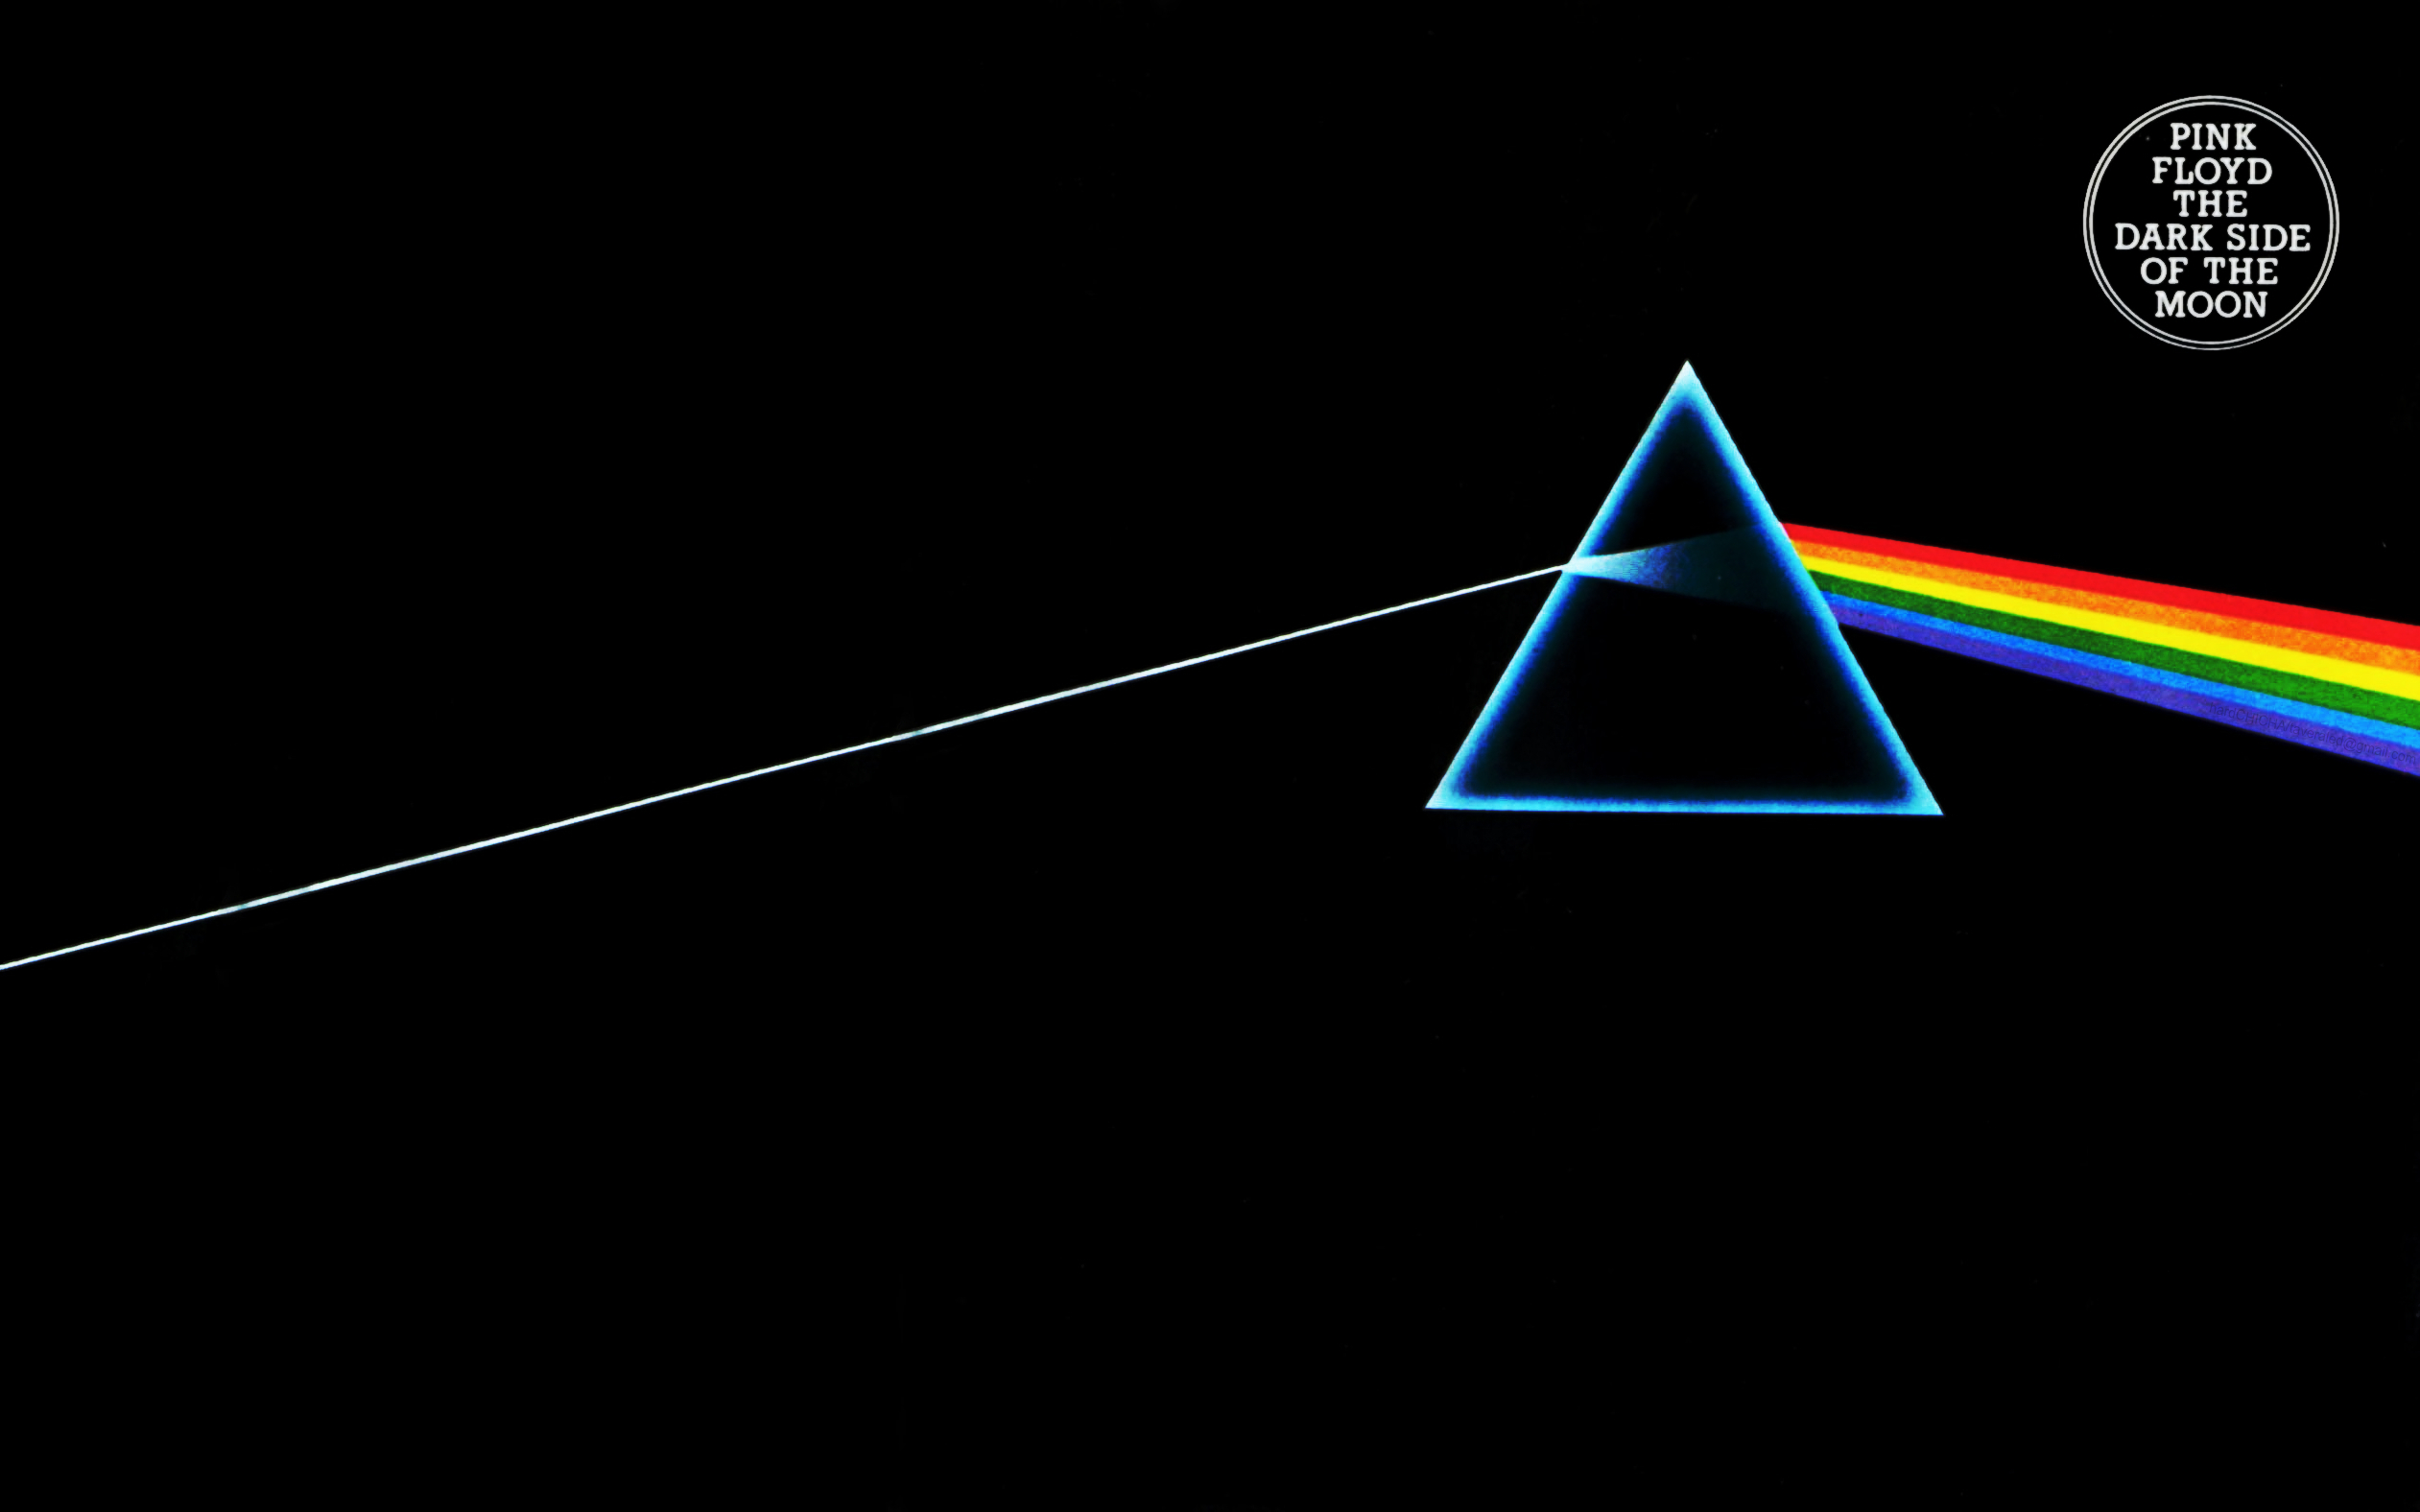 Dark Side of the Moon 773661 Desktop and mobile wallpaper 2522x1576